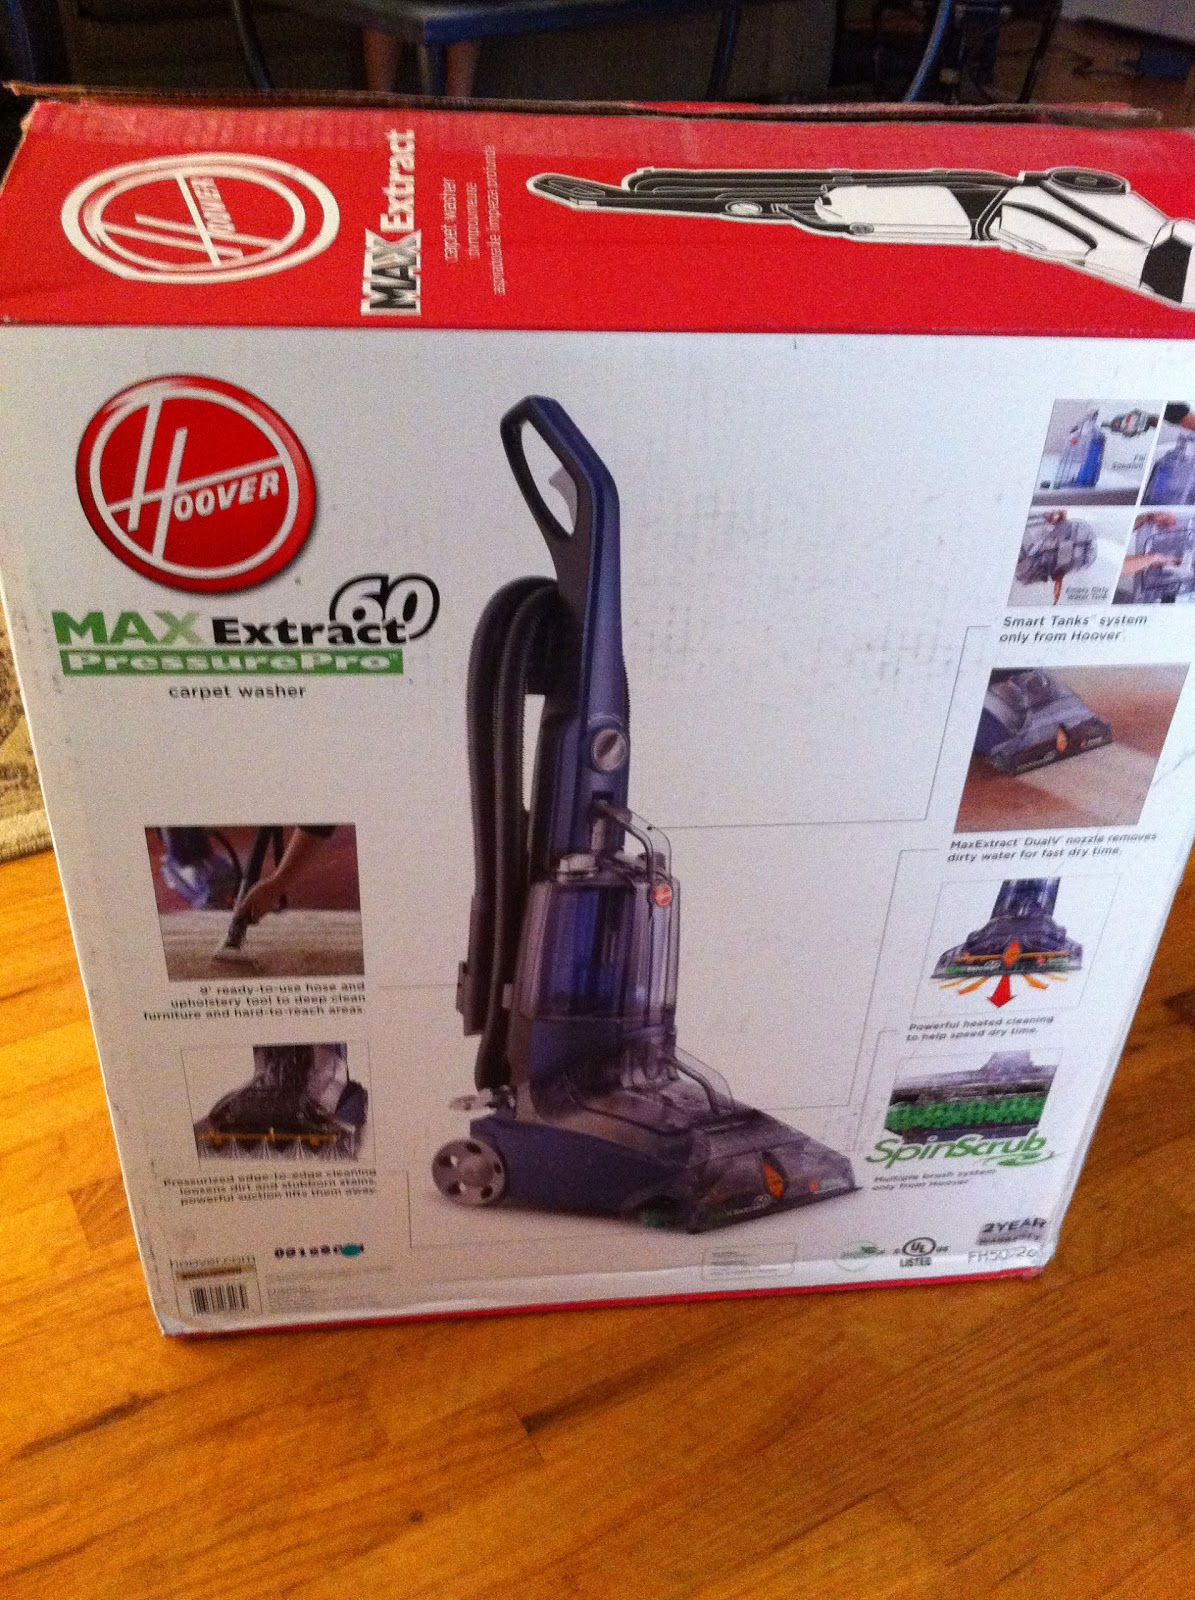 The Funky Monkey Hoover Max Extract 60 Pressure Pro Carpet Deep